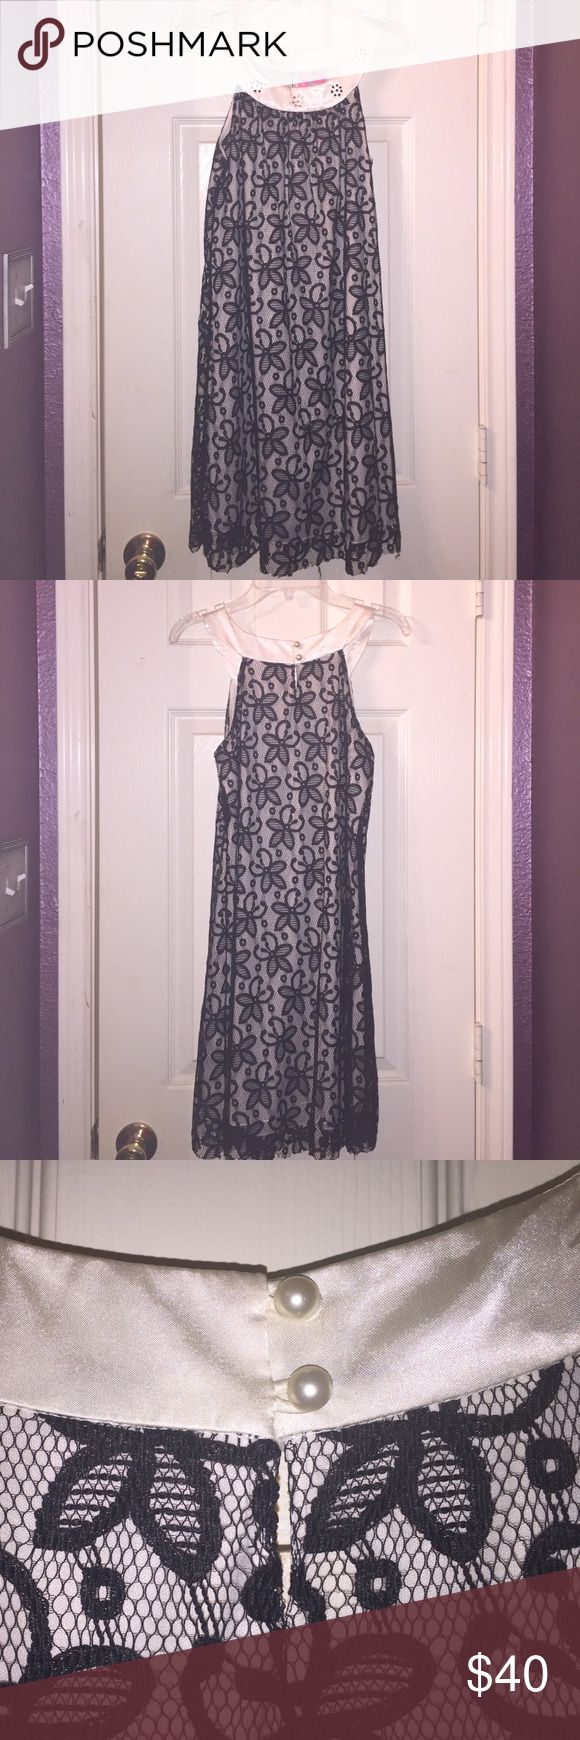 Speechless Nordstrom girls party/church dress Beautiful ivory and black Lace dress with crystal Embellished scoop neck. Pearl buttons in the back. like new. Worn once. Hype Dresses Formal